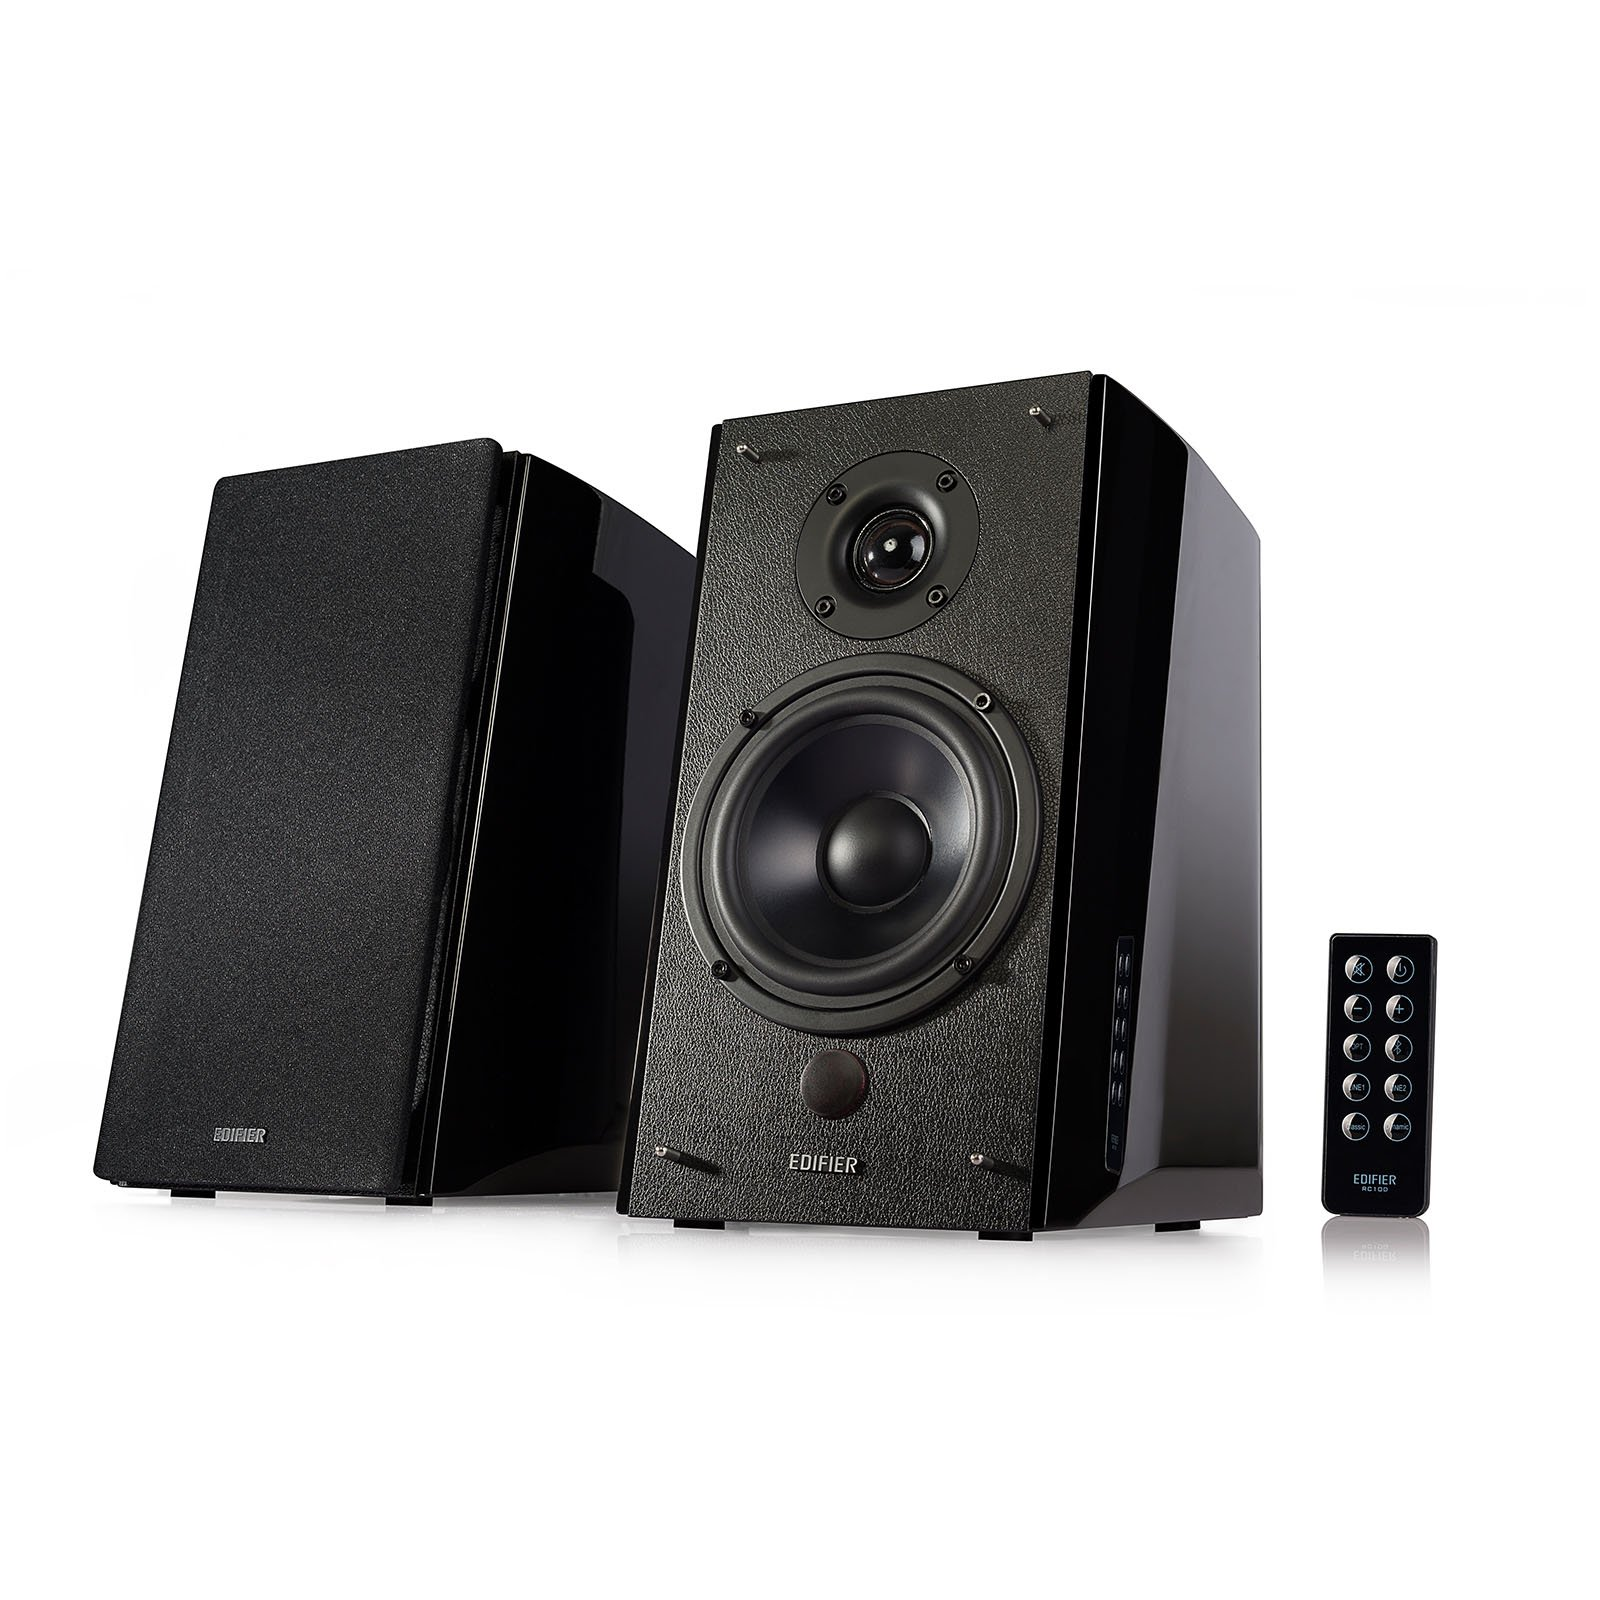 Edifier R2000DB Powered Bluetooth Bookshelf Speakers - Near-Field Studio Monitors - Optical Input - 5 inch Subwoofer - 120 Watts RMS by Edifier